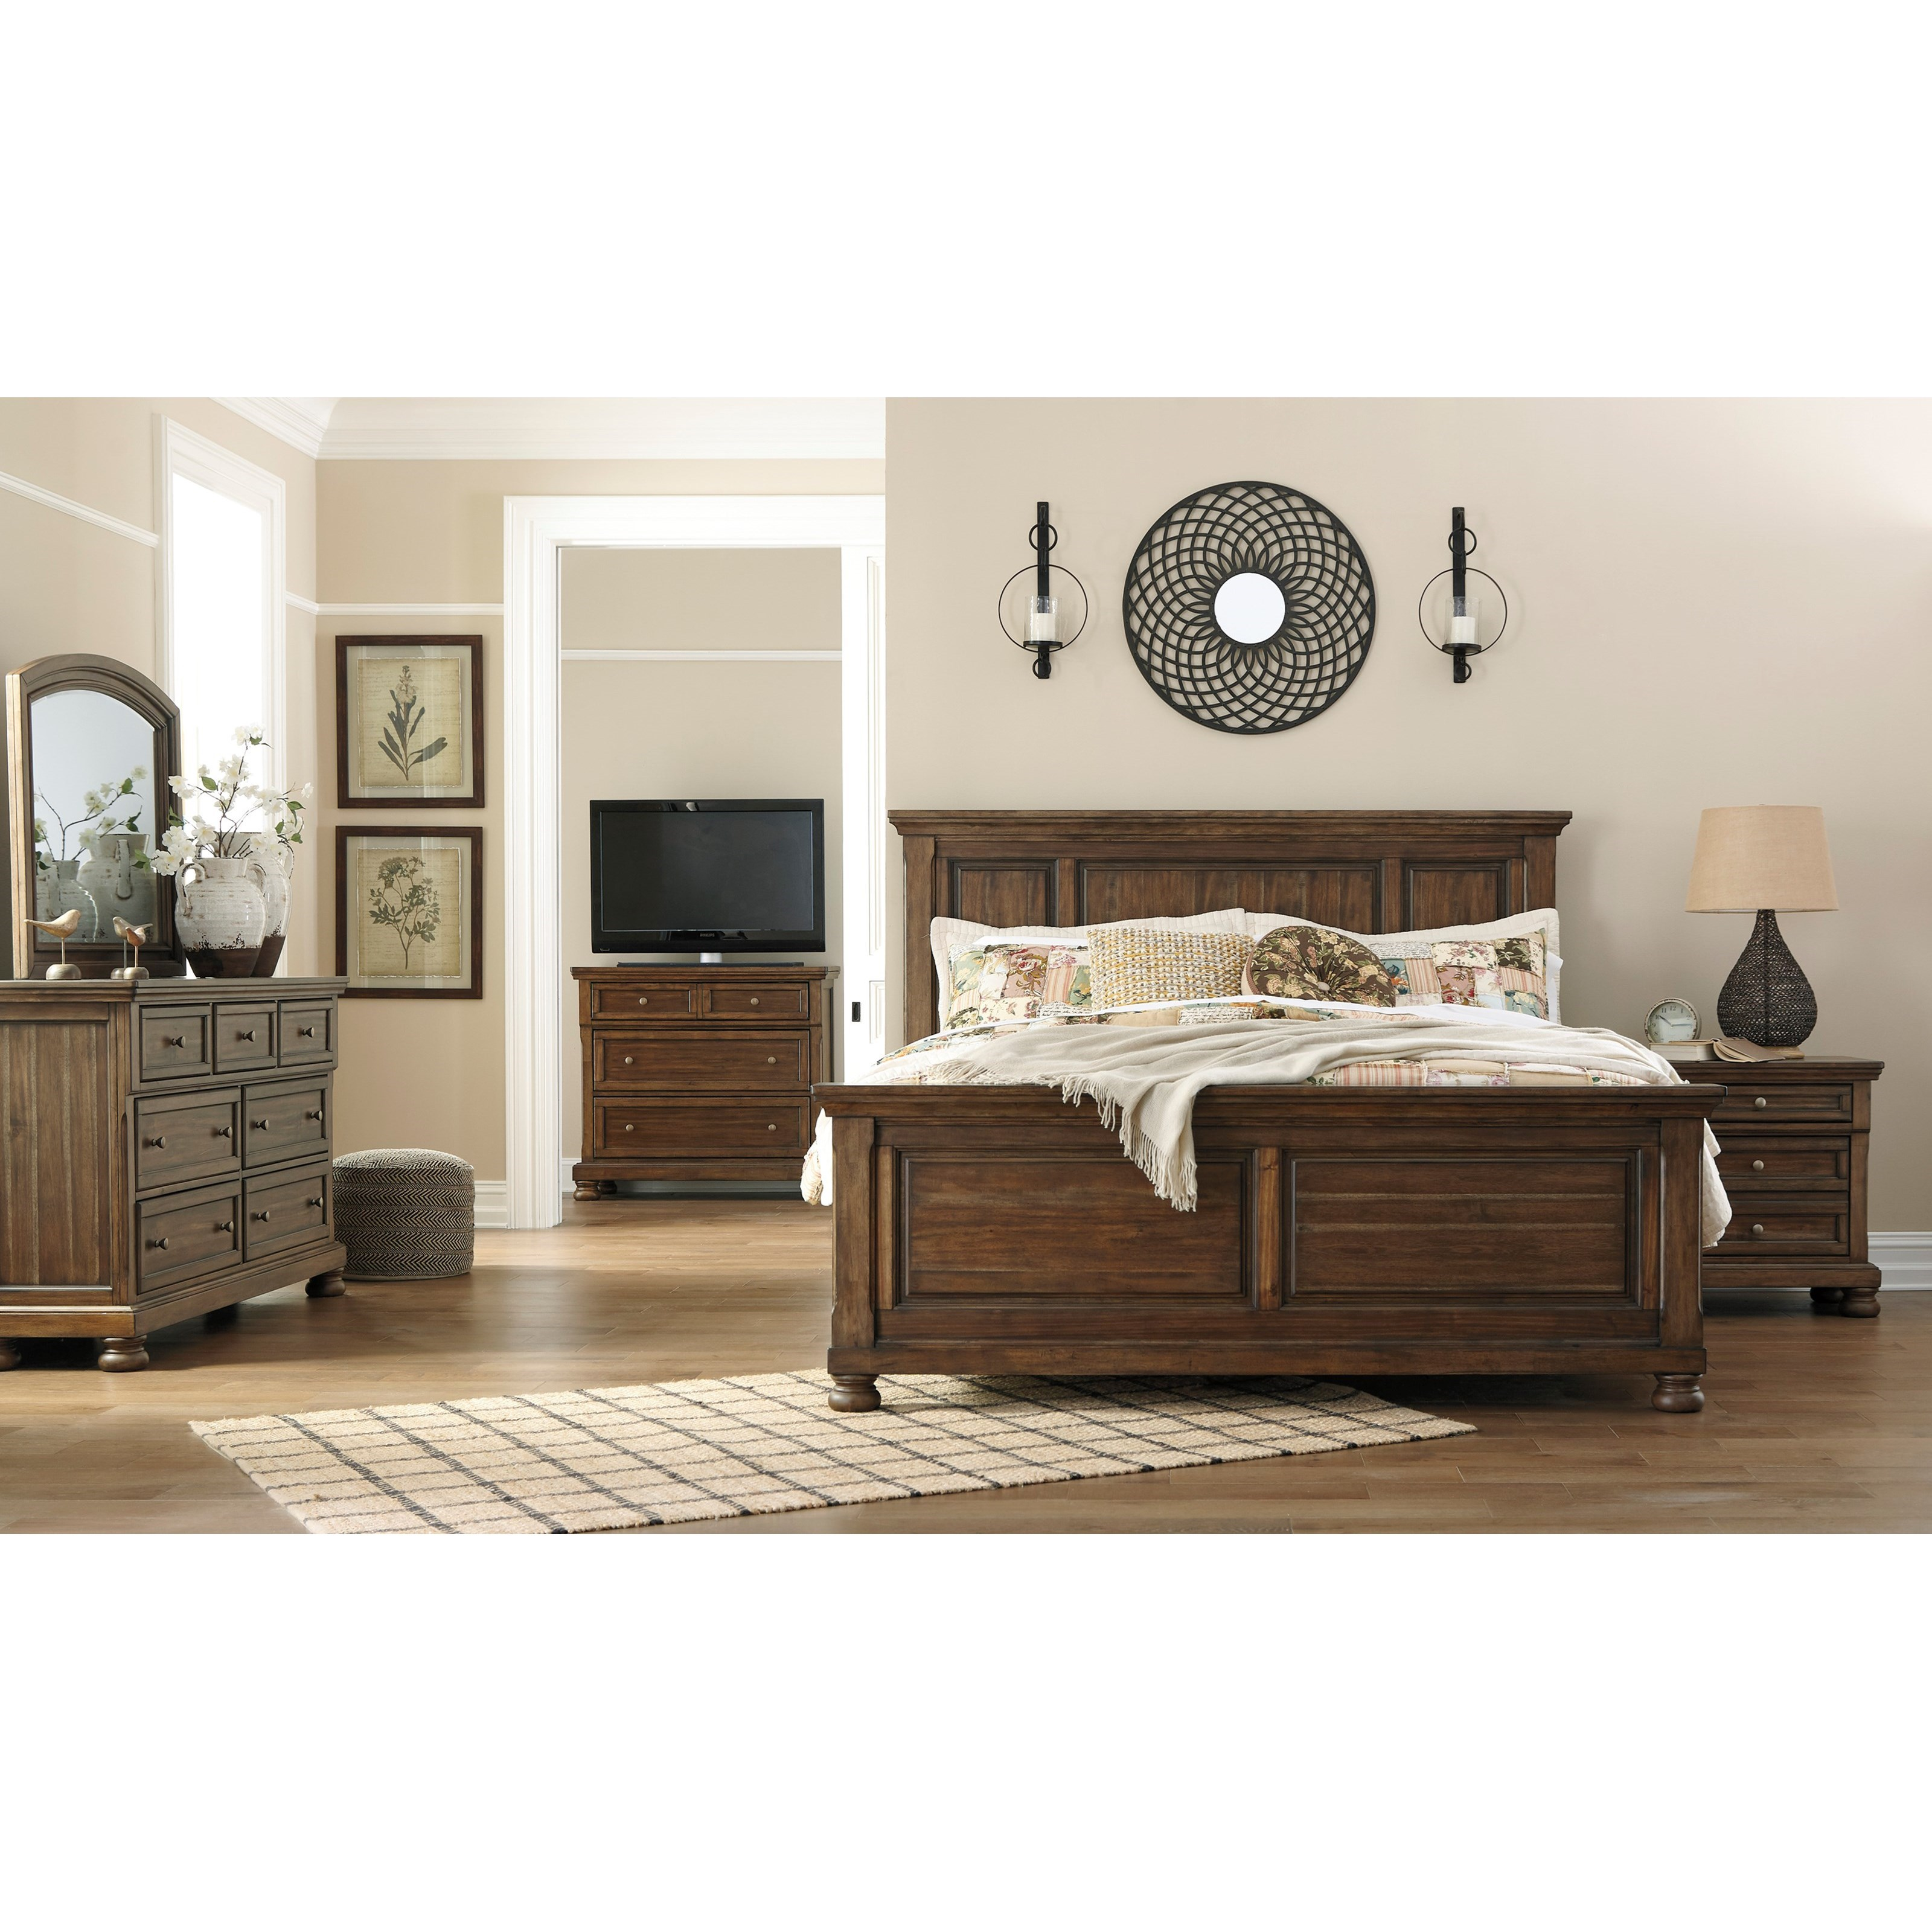 Flynnter California King Bedroom Group by Signature Design by Ashley at Zak's Warehouse Clearance Center